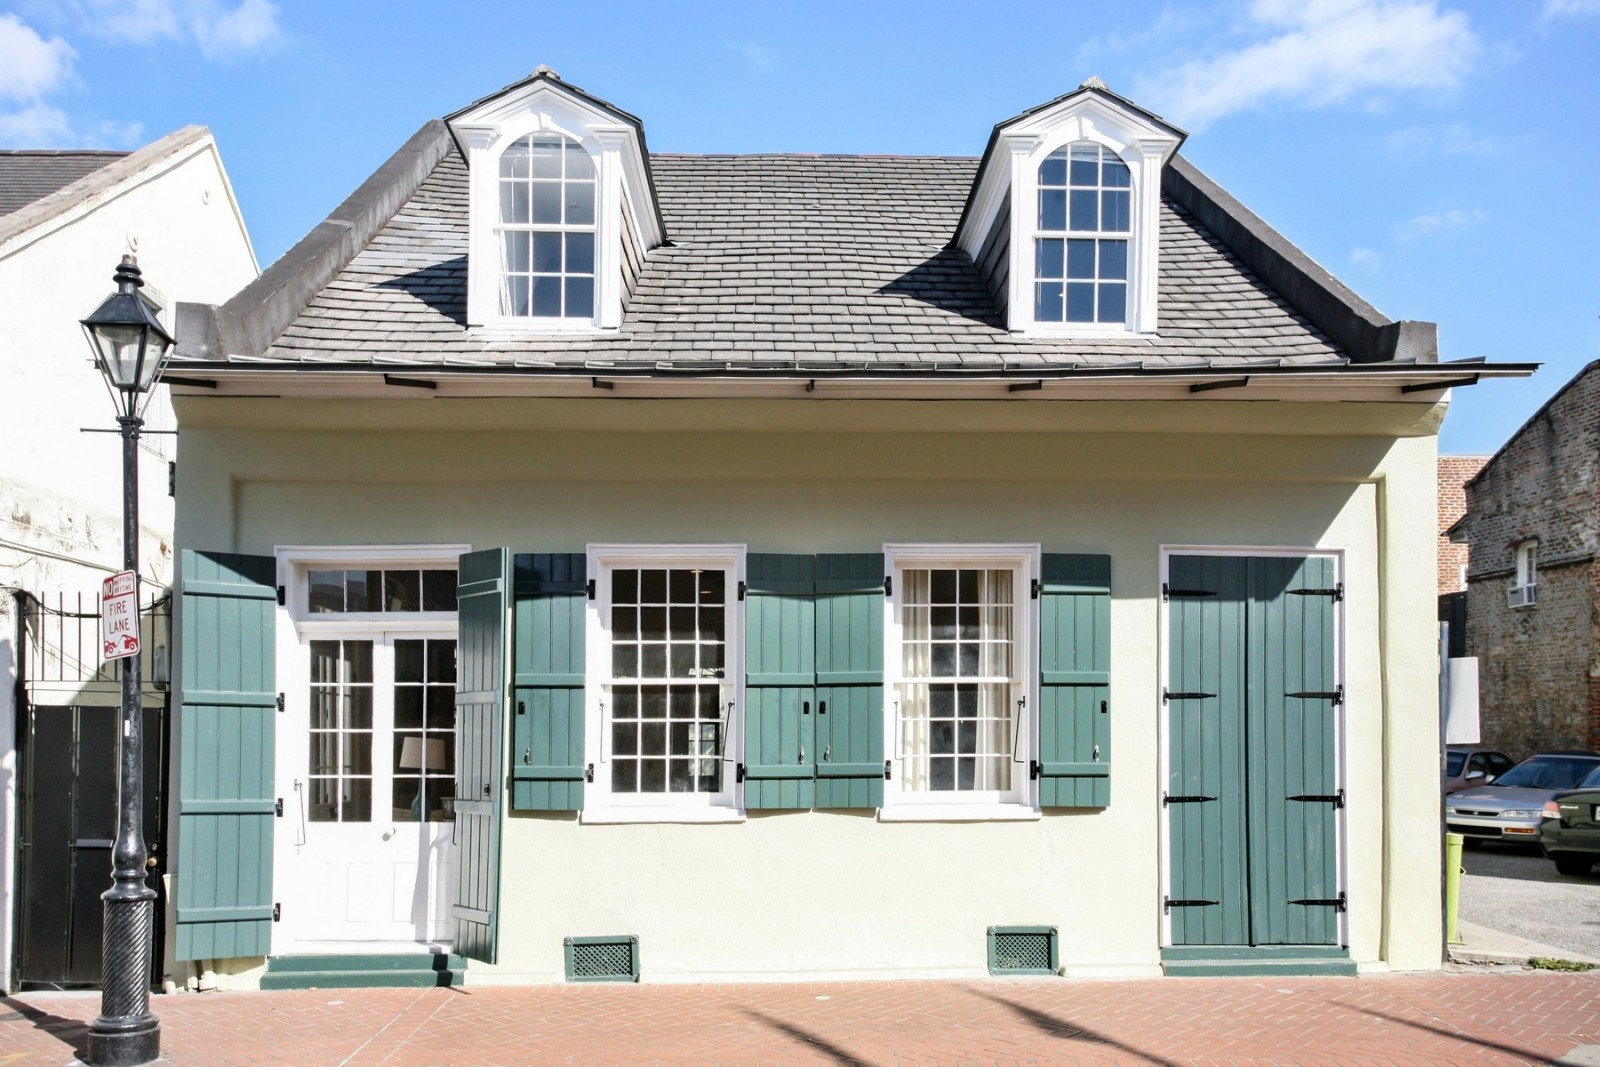 House of the Week An Early 1800s Creole Cottage in the French Quarter